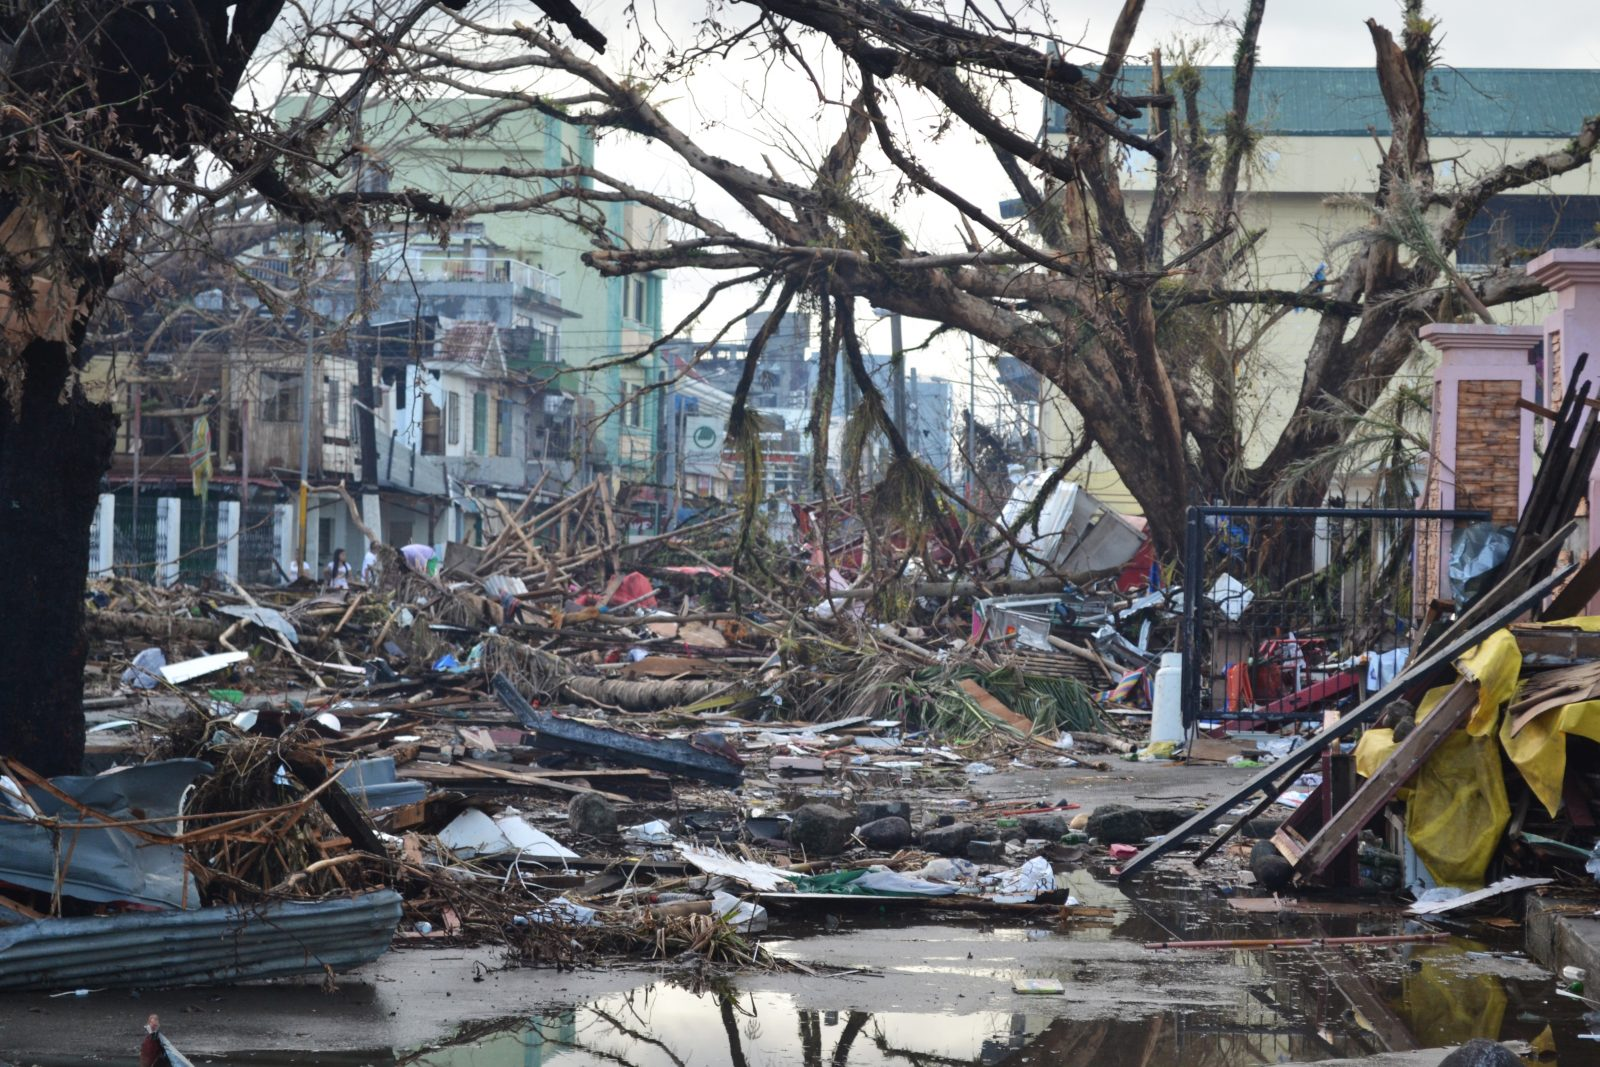 Tacloban after 'Yolanda.' Photo by Eoghan Rice / Trócaire-Caritas via Wikipedia.